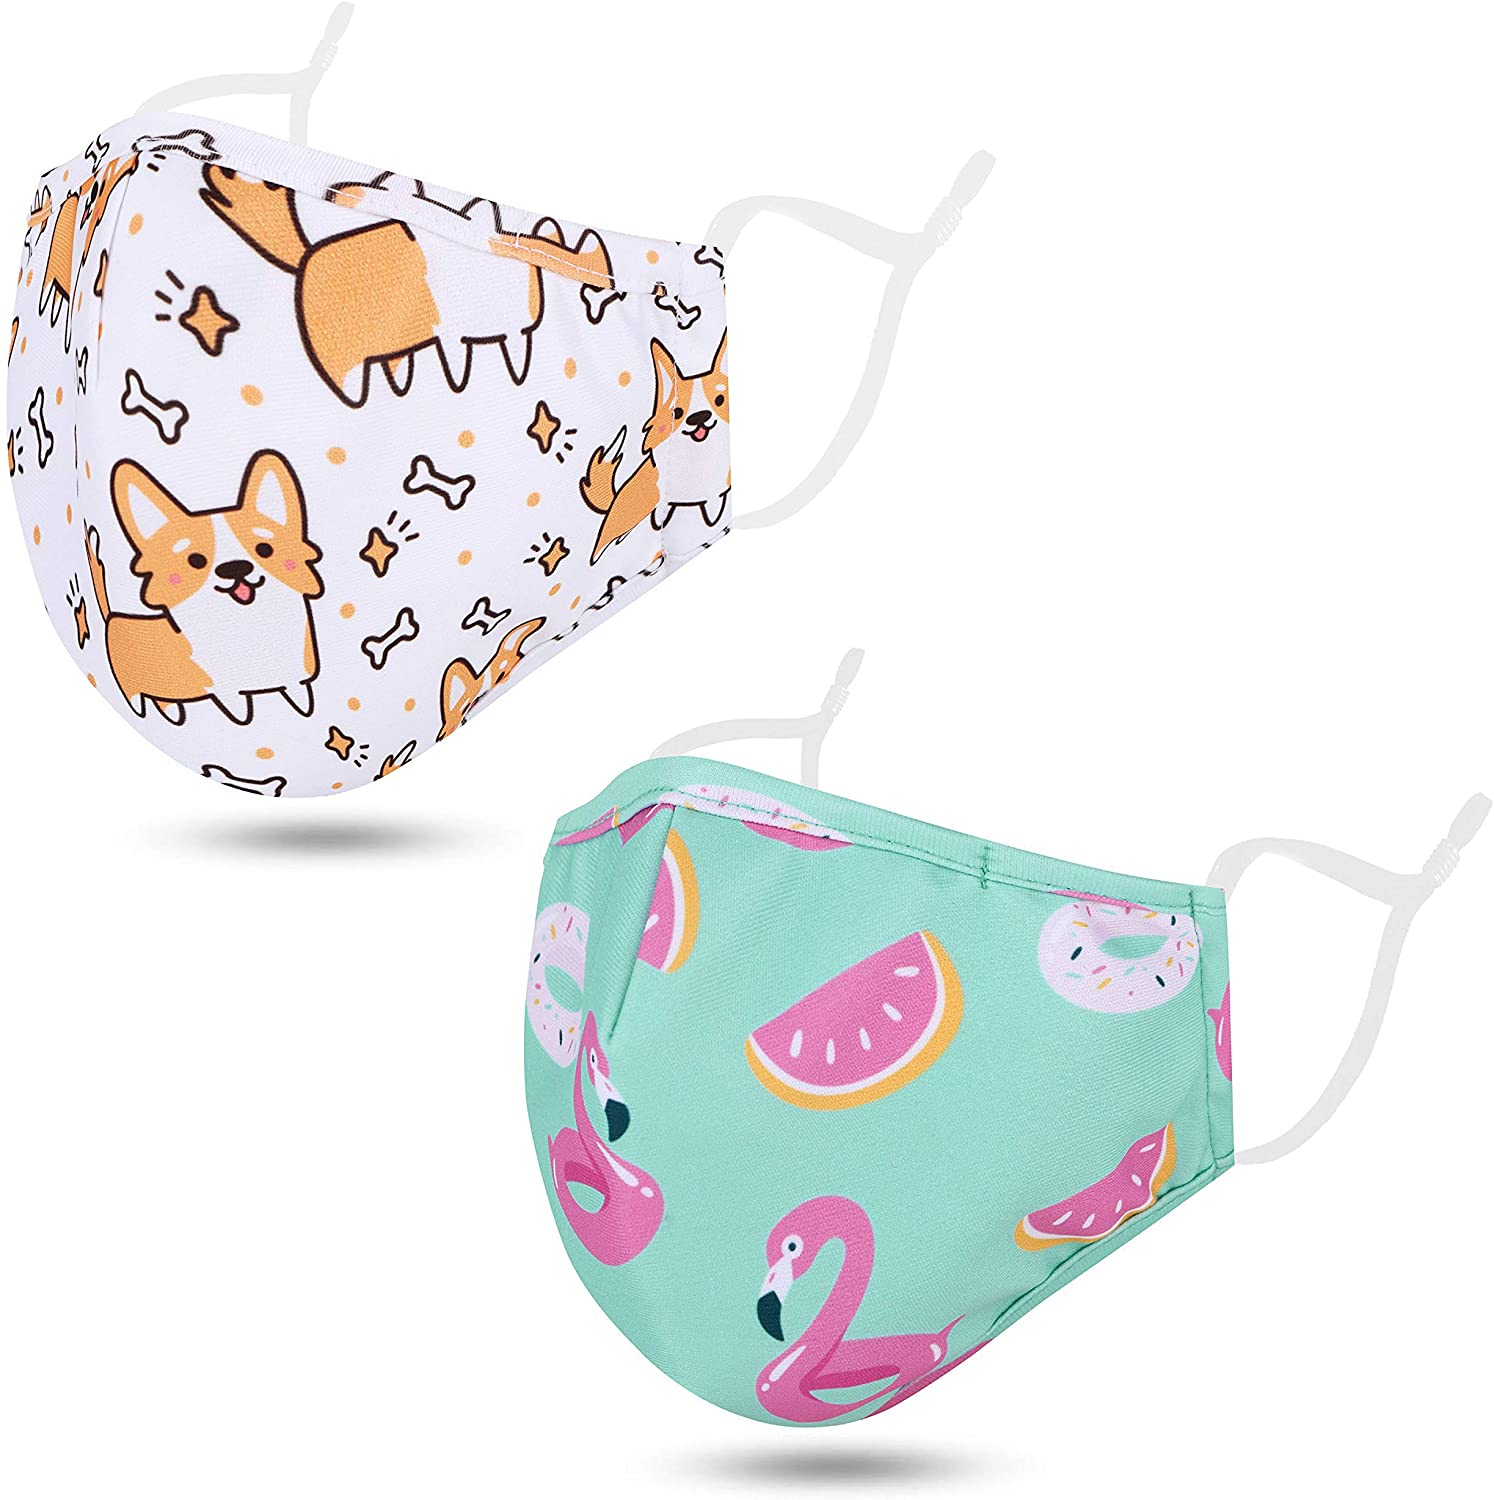 Multi Pack Childrens Cloth Face Madks Reusable Washable with Cute Print Design, Kids Face Madks with Adjustable Ear Loops and Nose Bridge, 5-12T, Dog/Swans